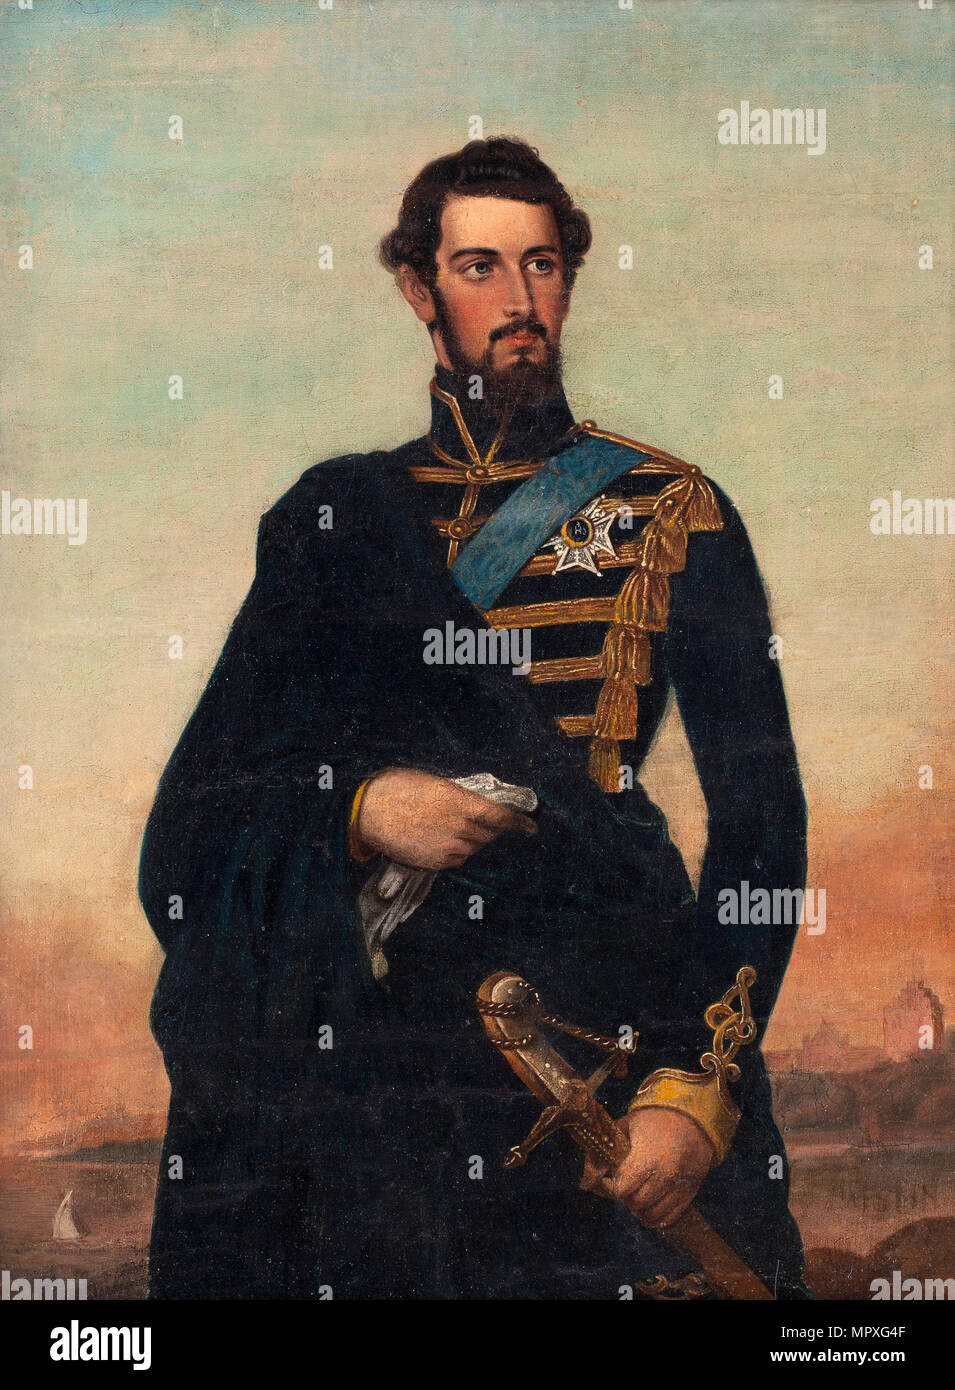 Portrait of the King Charles XV of Sweden. - Stock Image